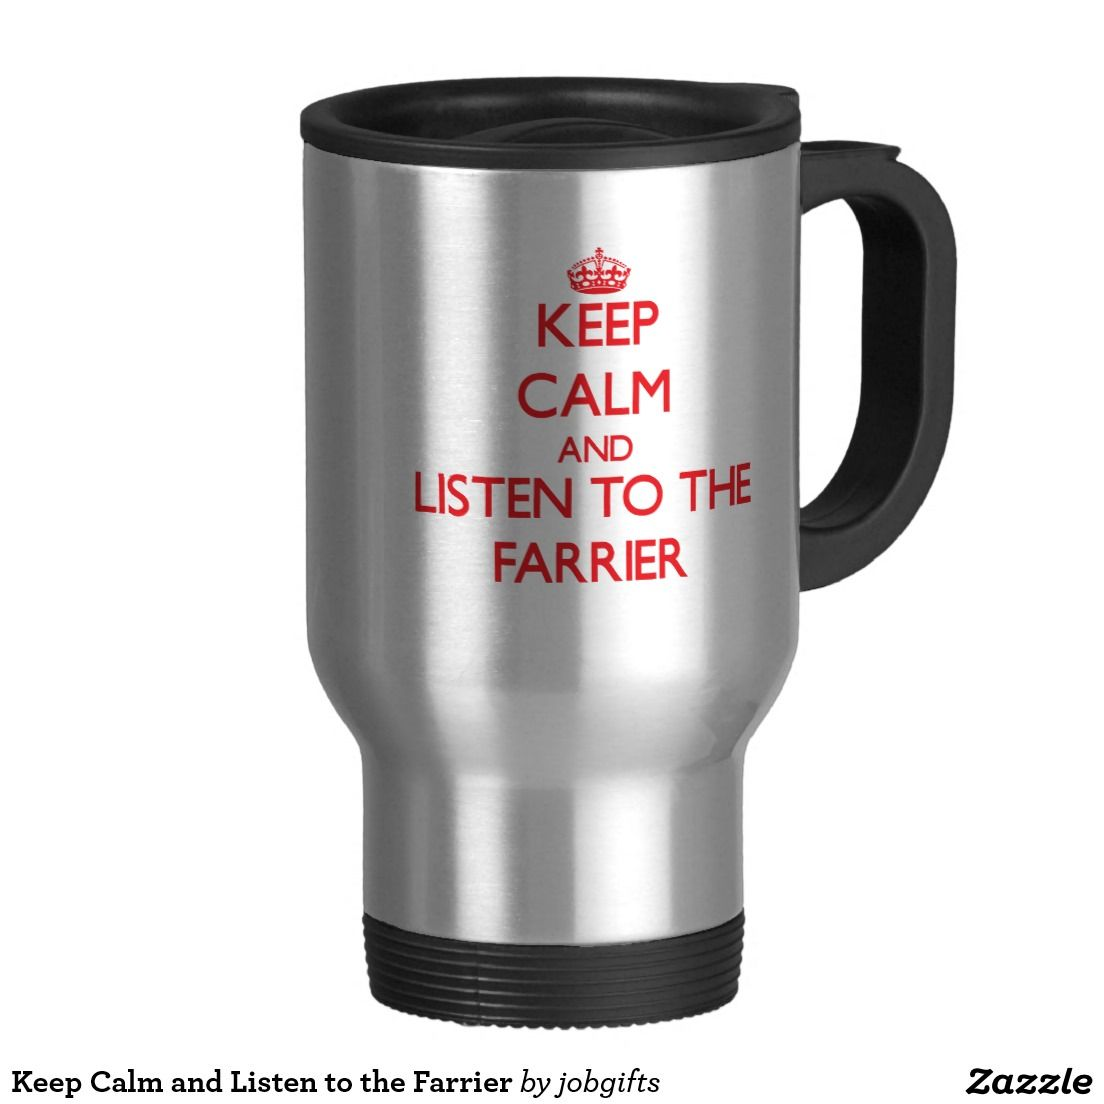 Keep Calm and Listen to the Farrier 15 Oz Stainless Steel Travel Mug